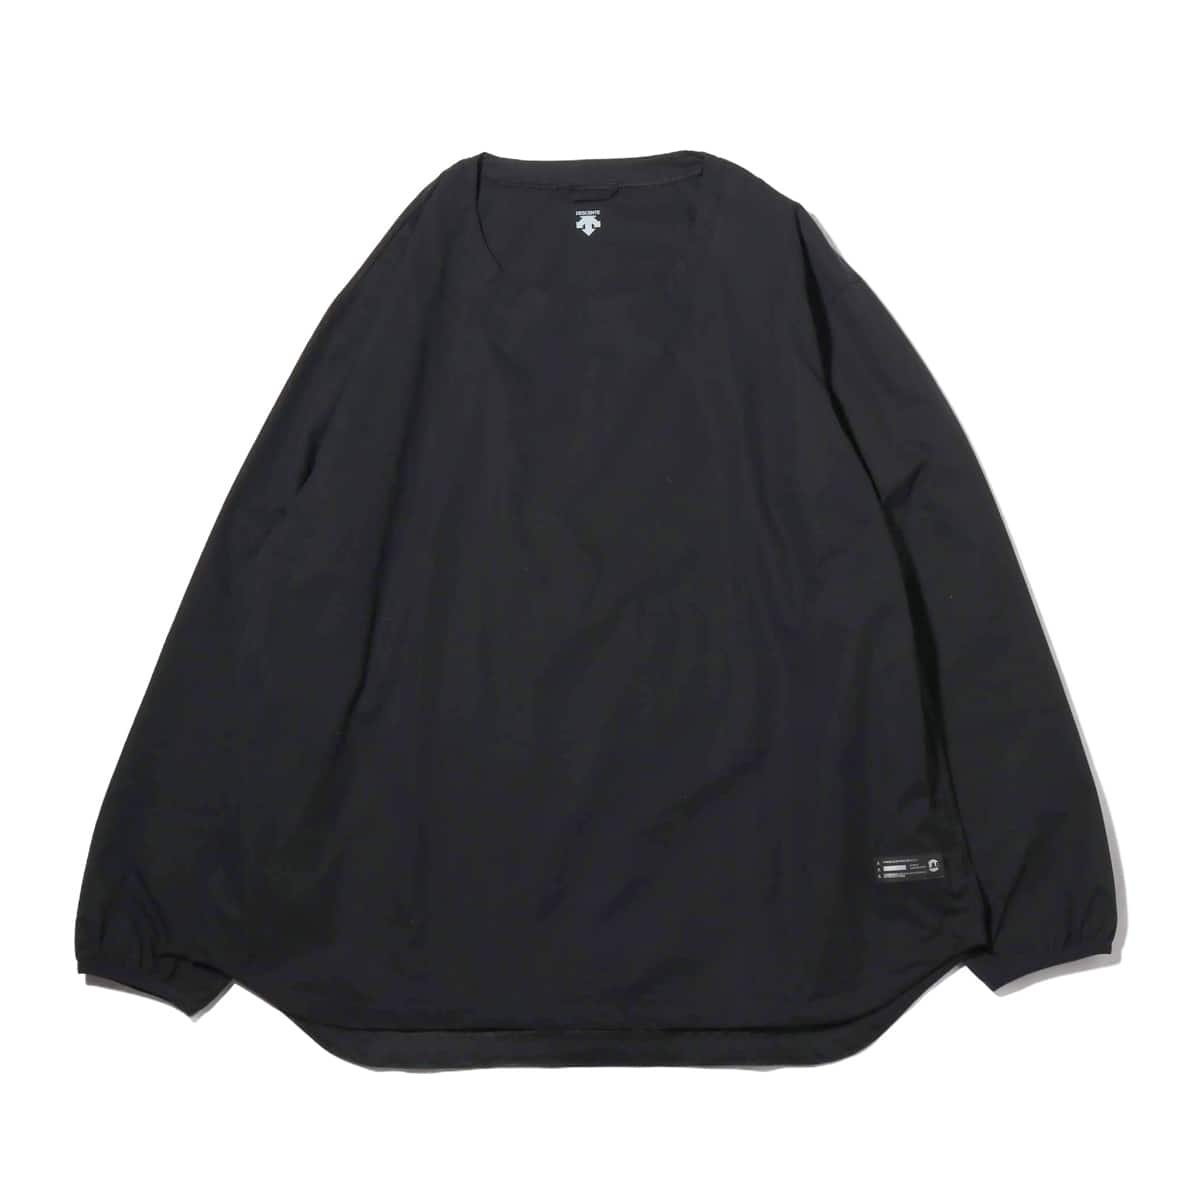 DESCENTE ddd X ATMOS LAB L/S PULLOVER SHIRT BLACK 19SP-I_photo_large